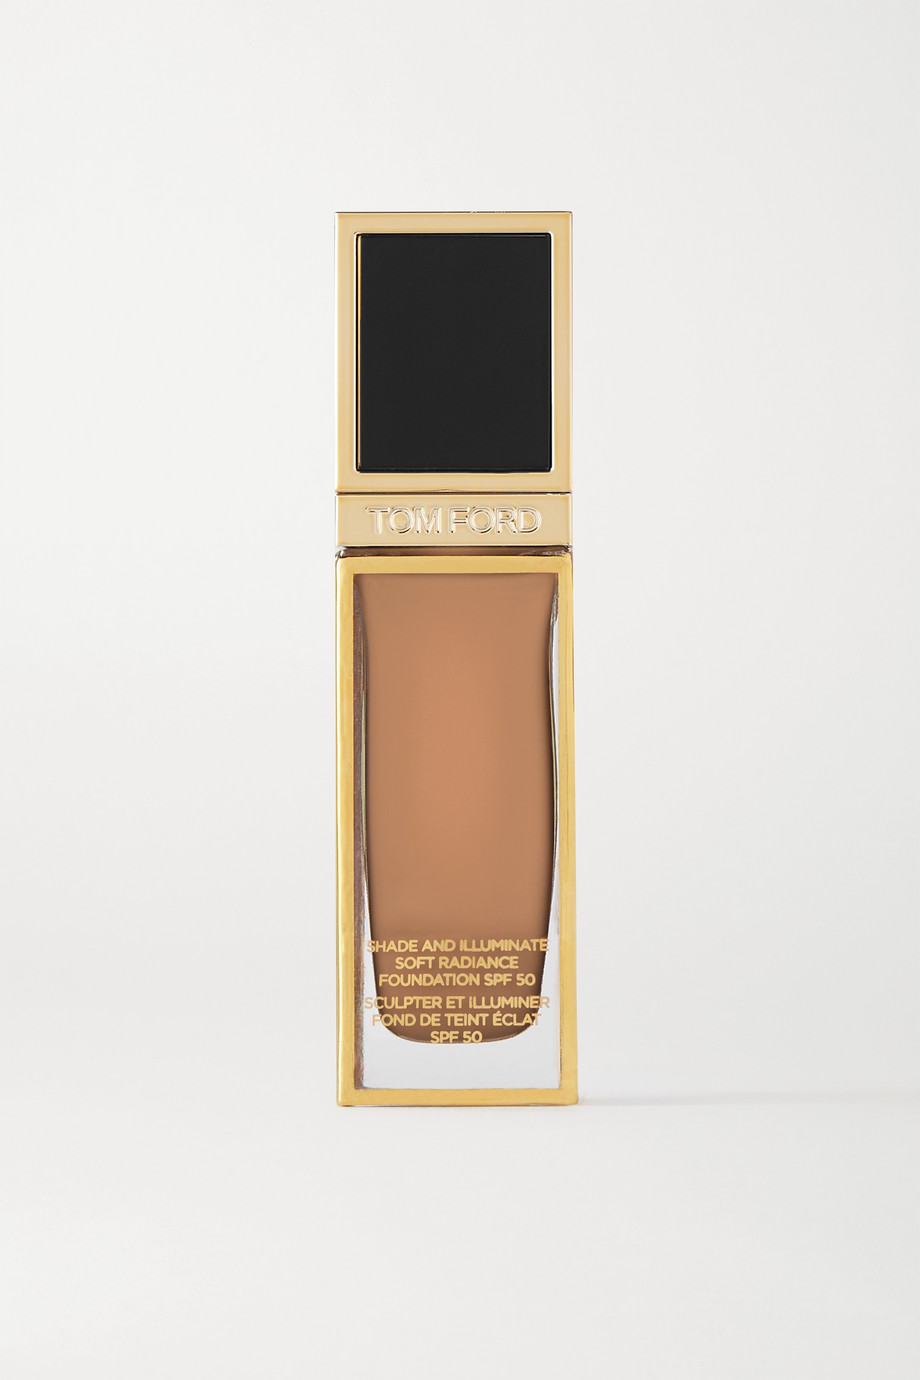 TOM FORD BEAUTY Shade and Illuminate Soft Radiance Foundation SPF50 - 7.5 Shell Beige, 30ml